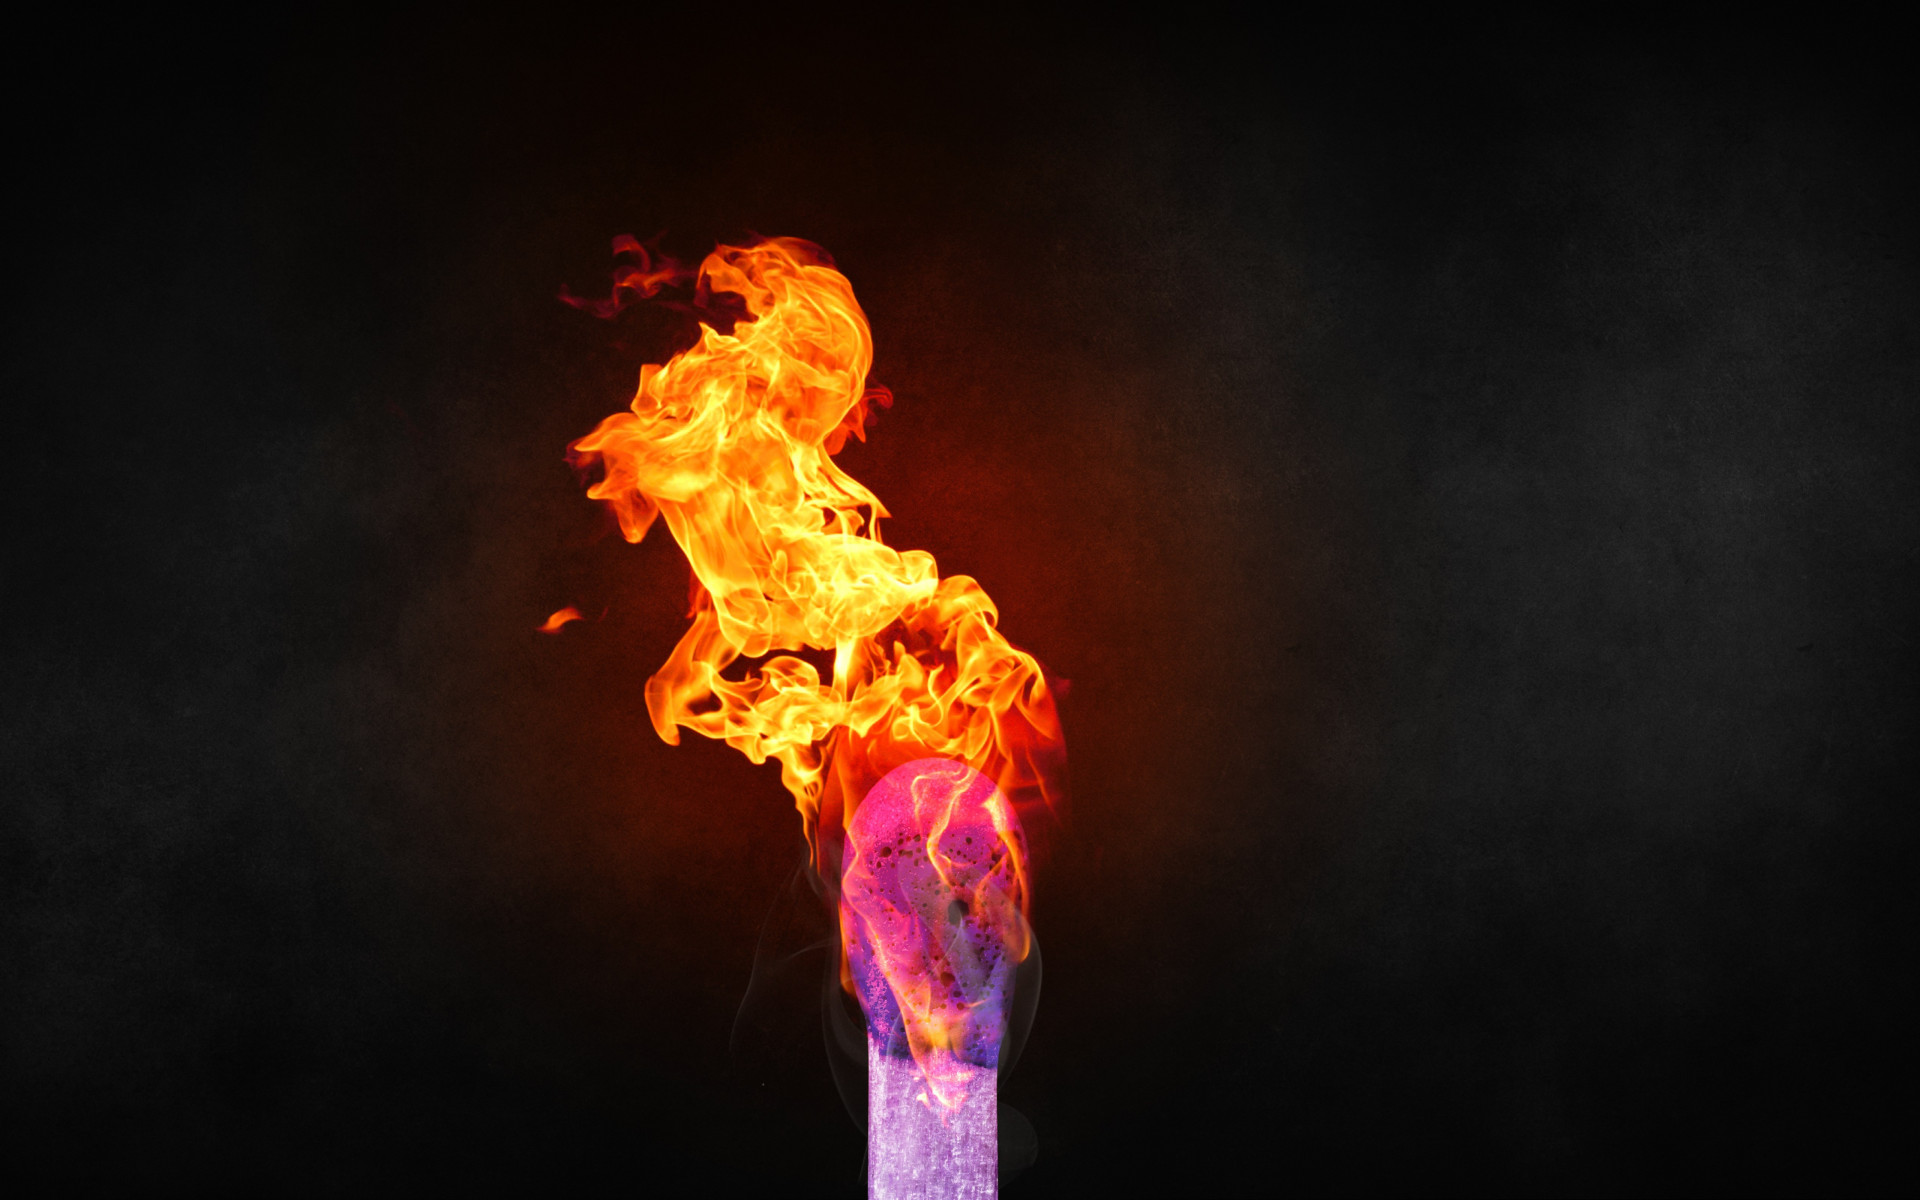 Burning match wallpaper 1920x1200